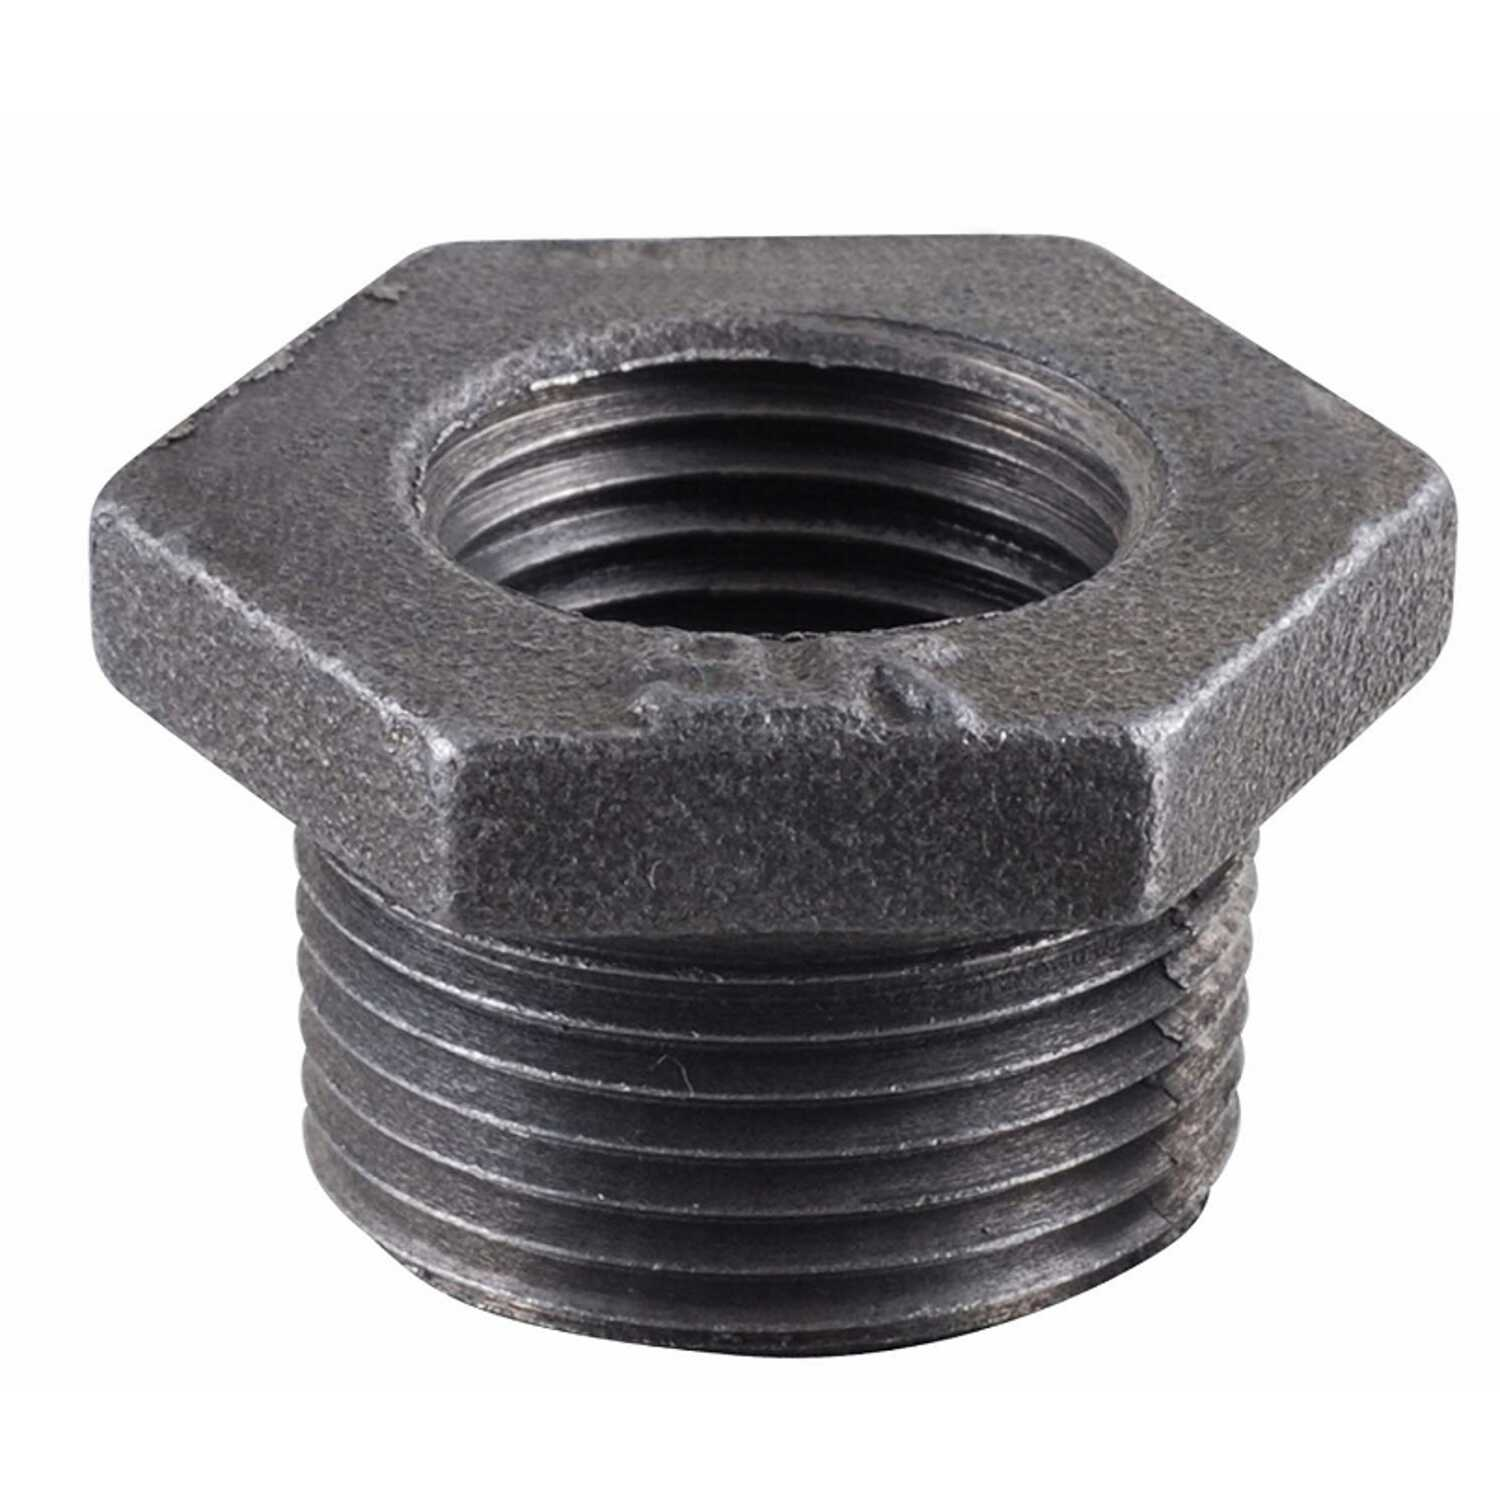 B & K  2 in. MPT   x 1-1/4 in. Dia. FPT  Black  Malleable Iron  Hex Bushing